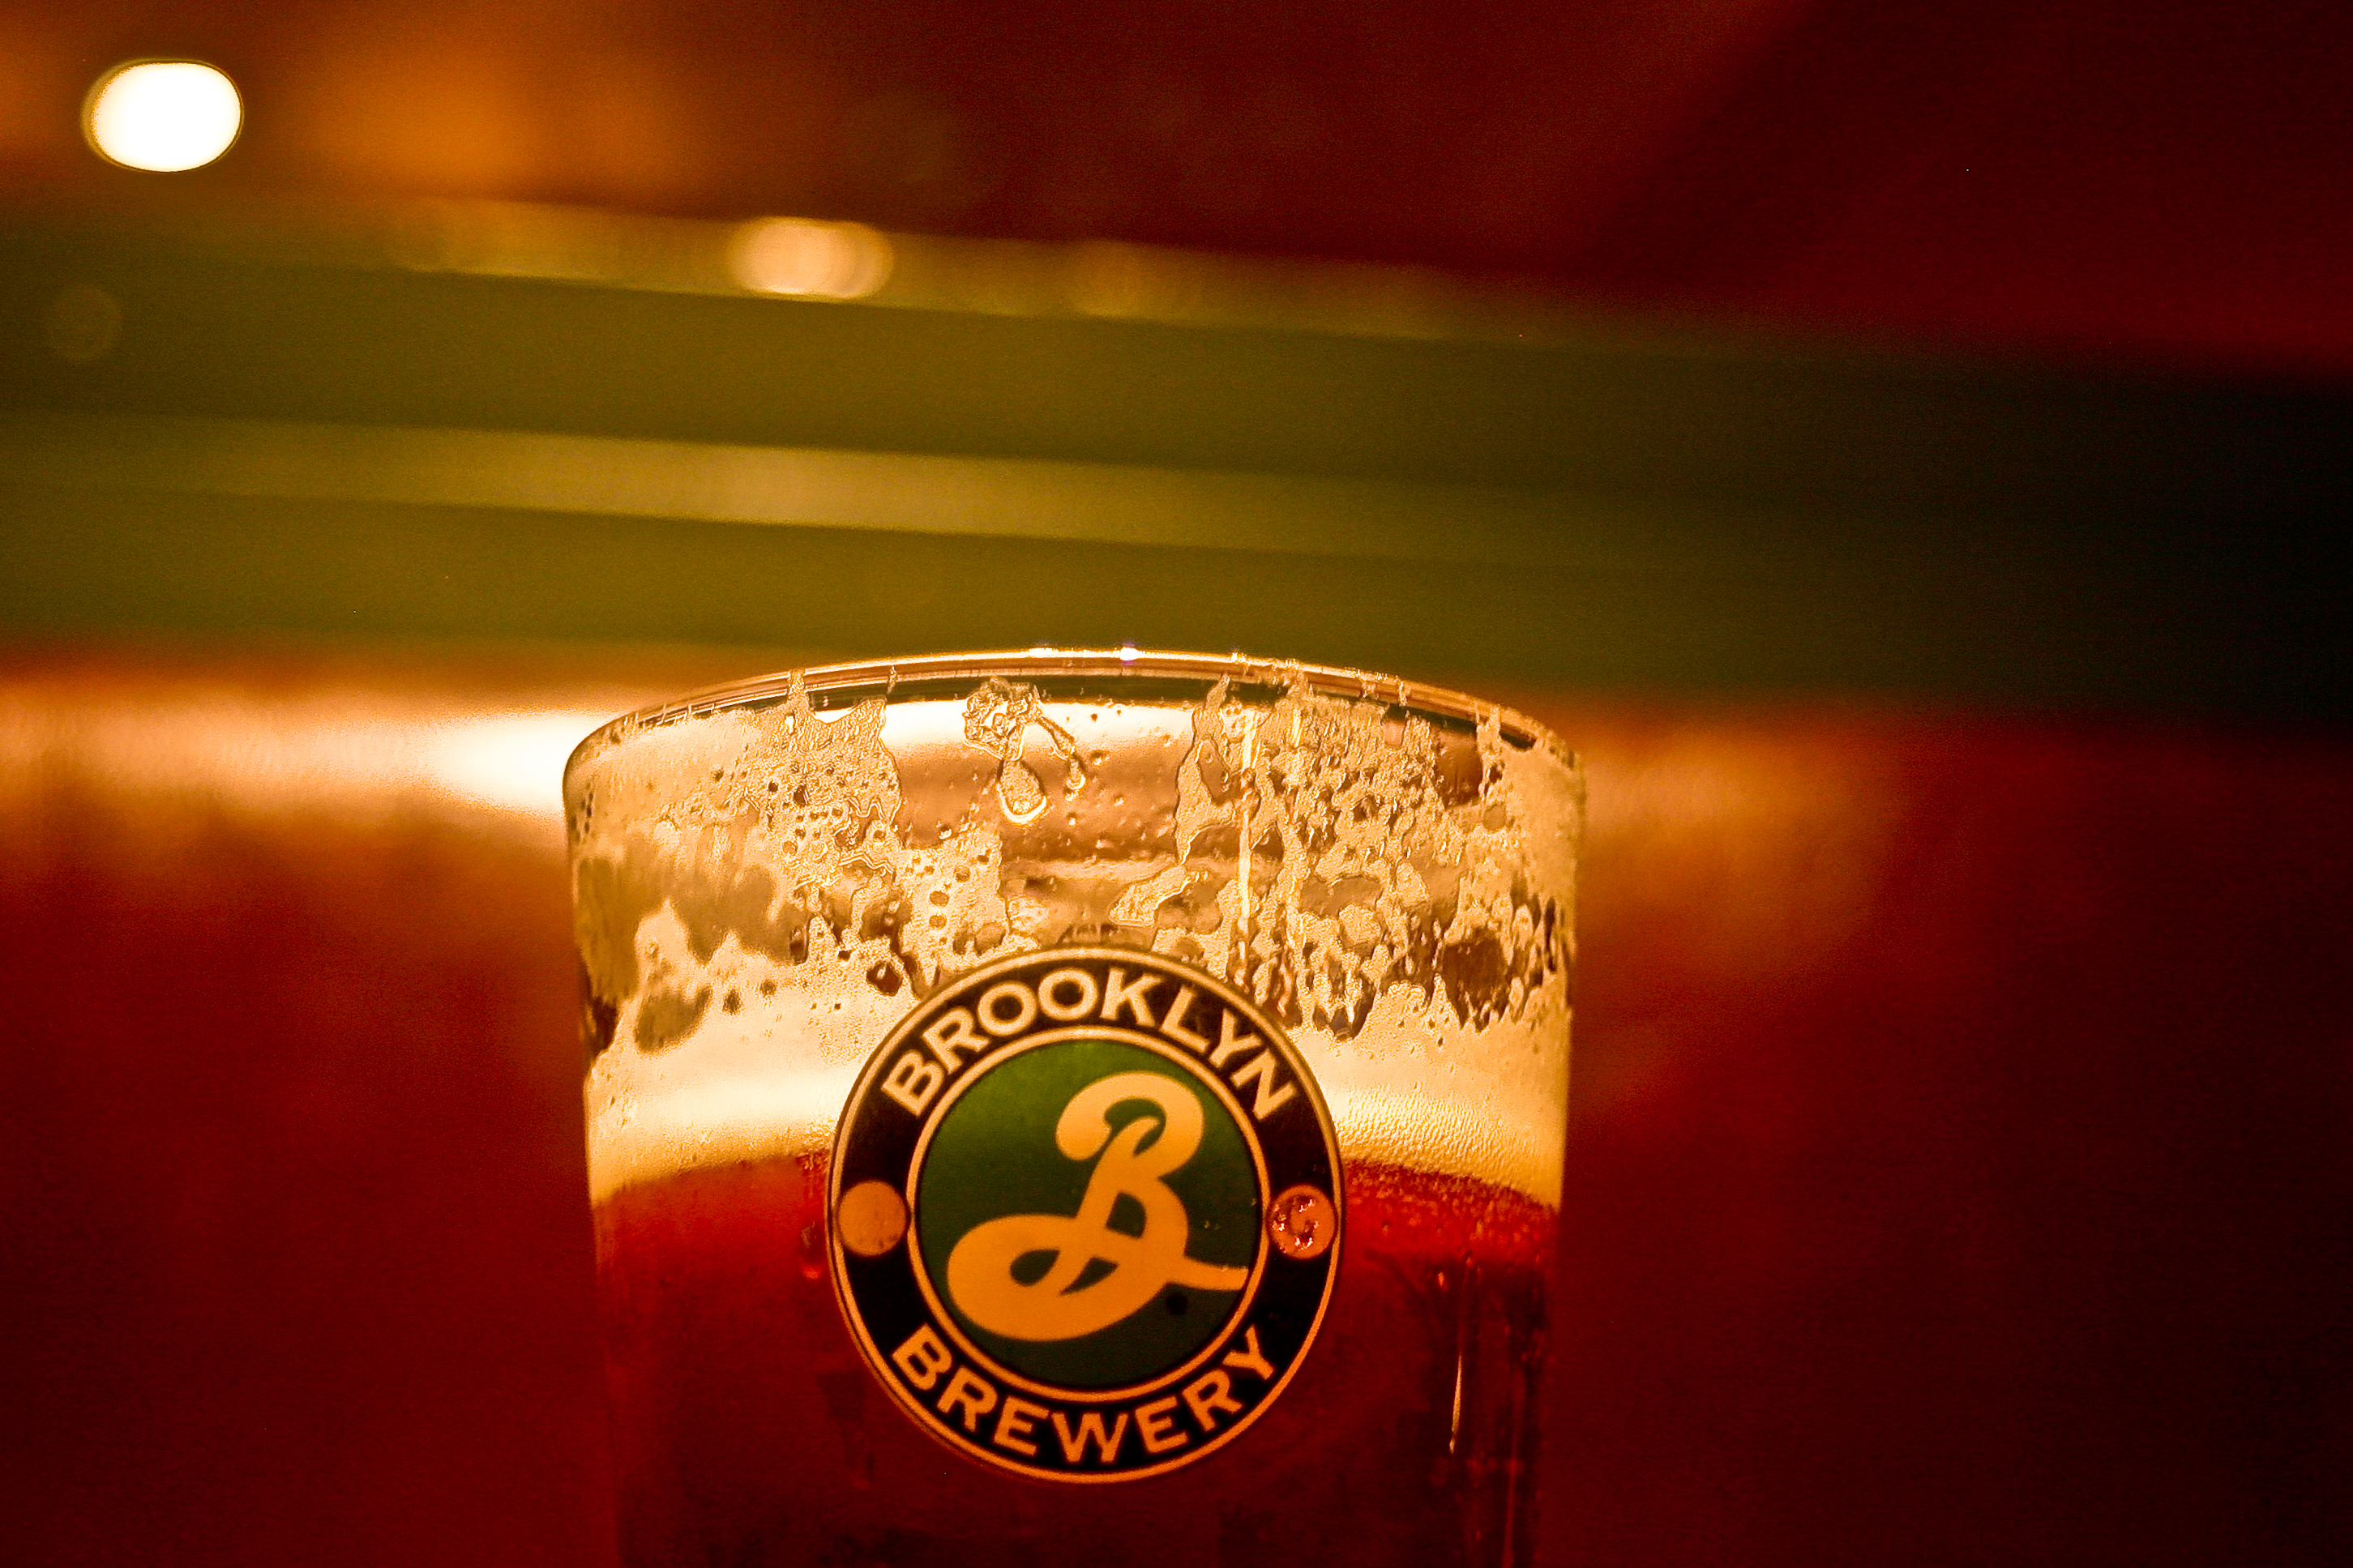 Try the city's best suds at NYC Beer Week starting this Friday